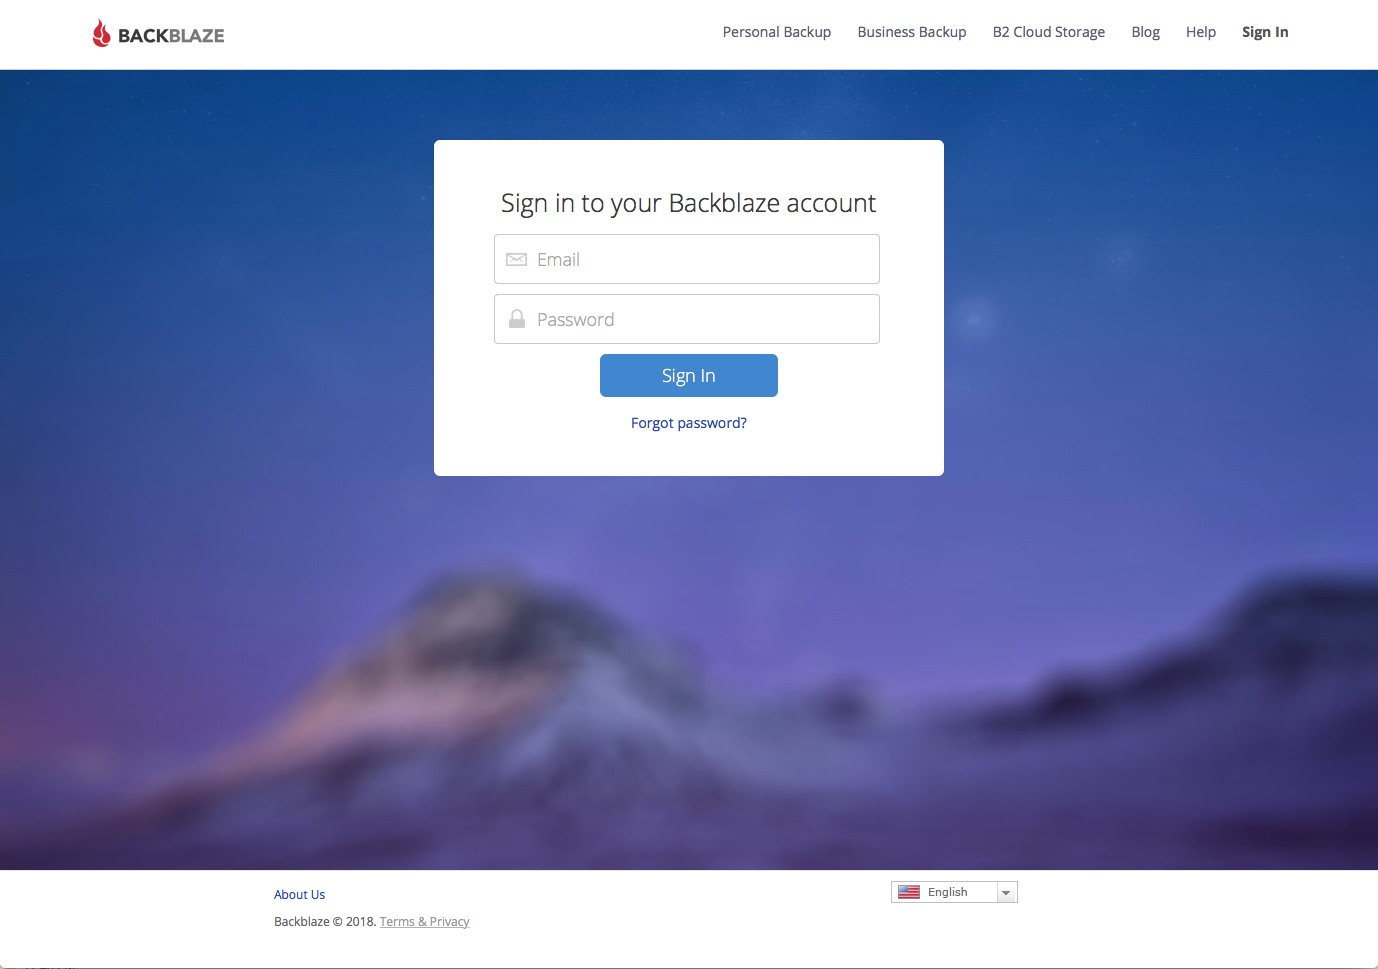 Sign In to Your Backblaze Account